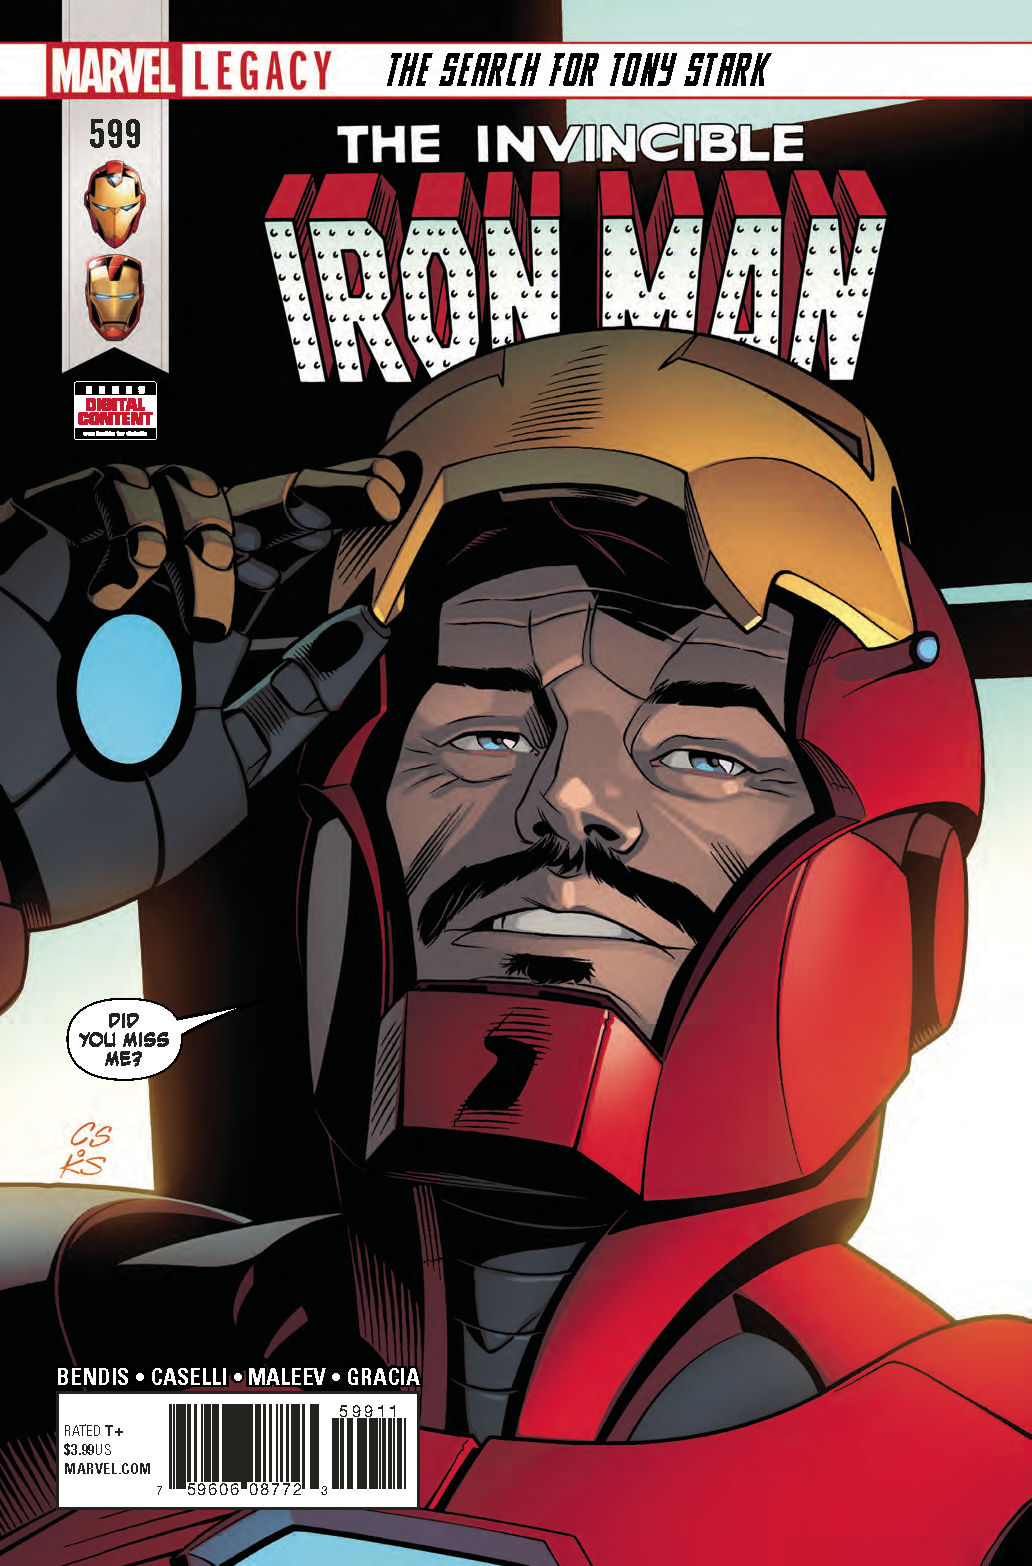 INVINCIBLE IRON MAN #599 LEG